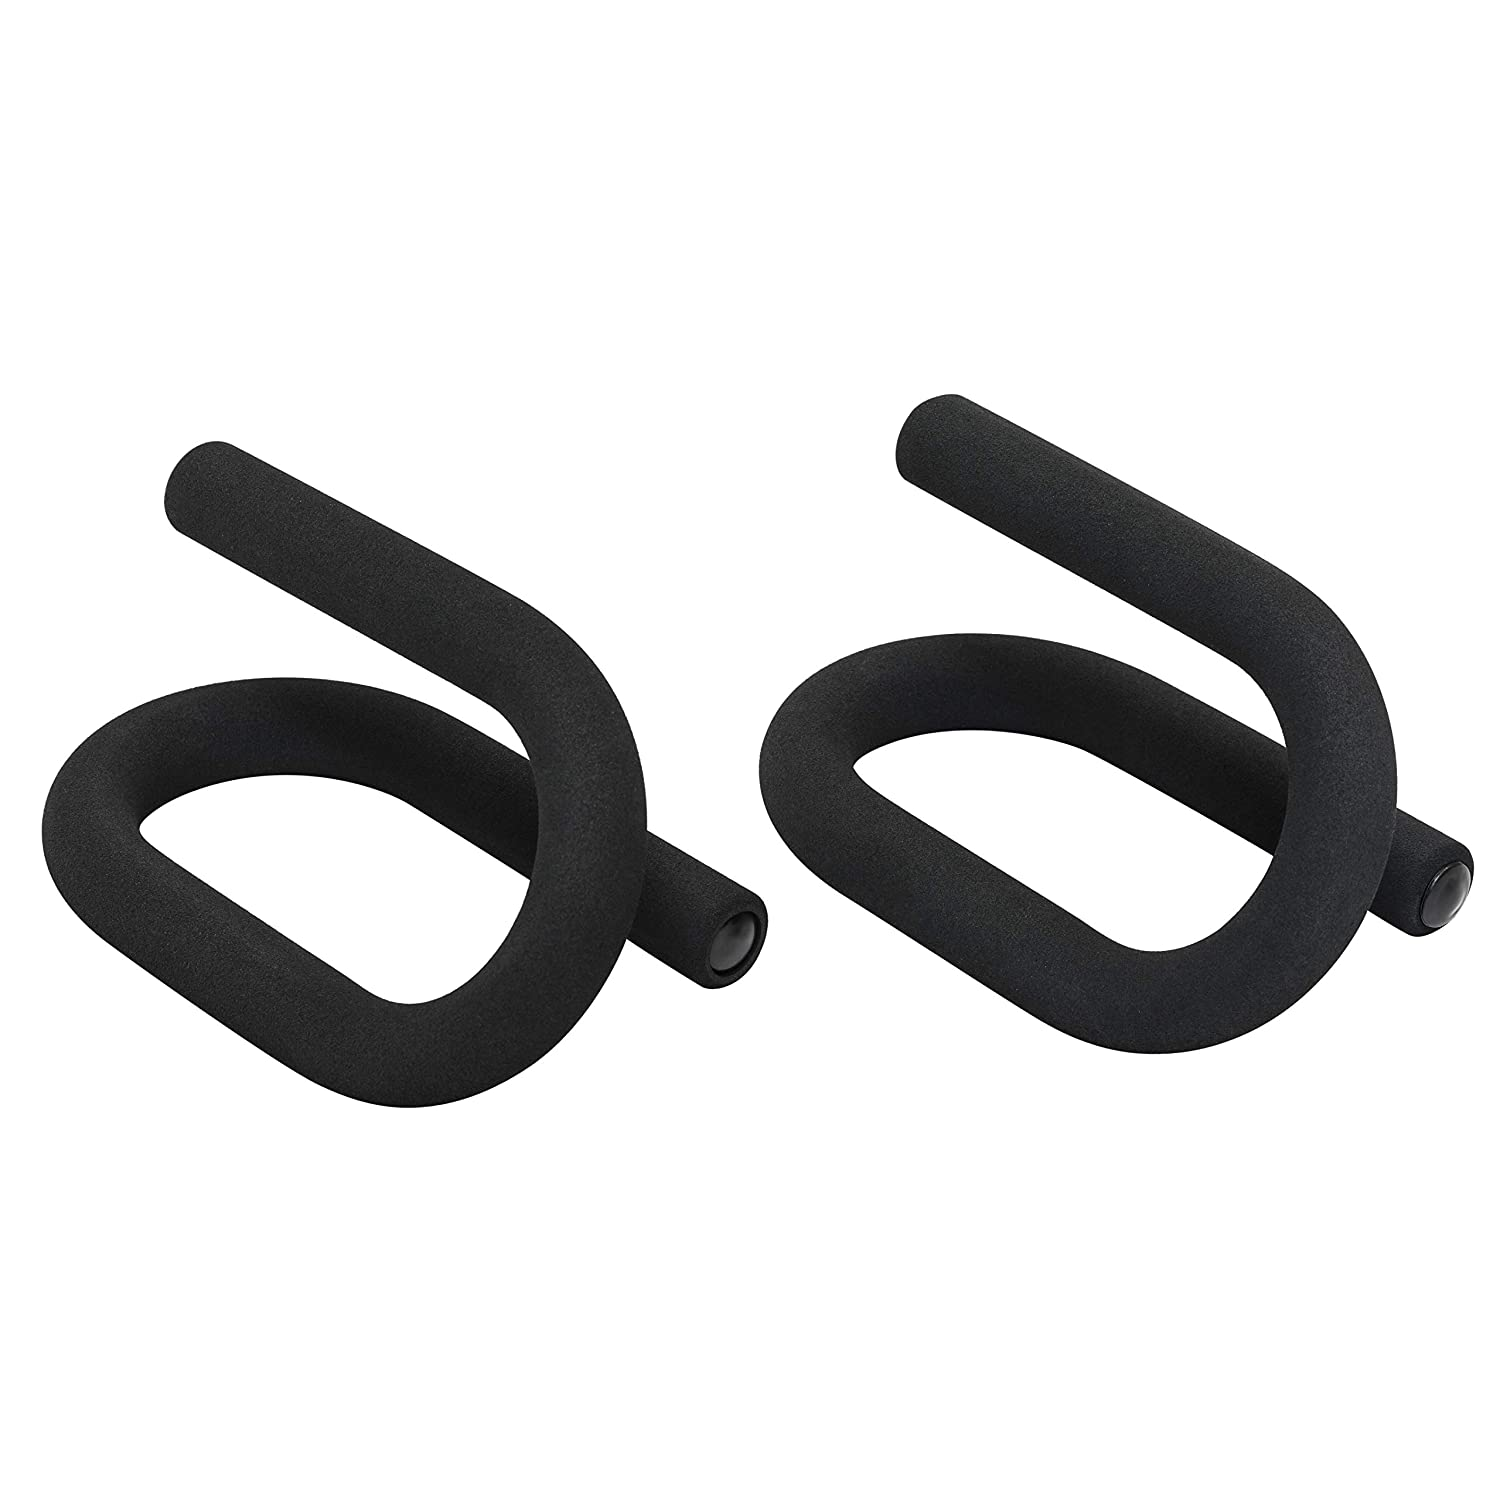 Suitable for Home or Gym with Comfortable Neoprene Coverage Fitness Exercise Trainer for Chest Back and Abdomen Arms TechFit Professional Endurance Push-Up Bars Shoulders